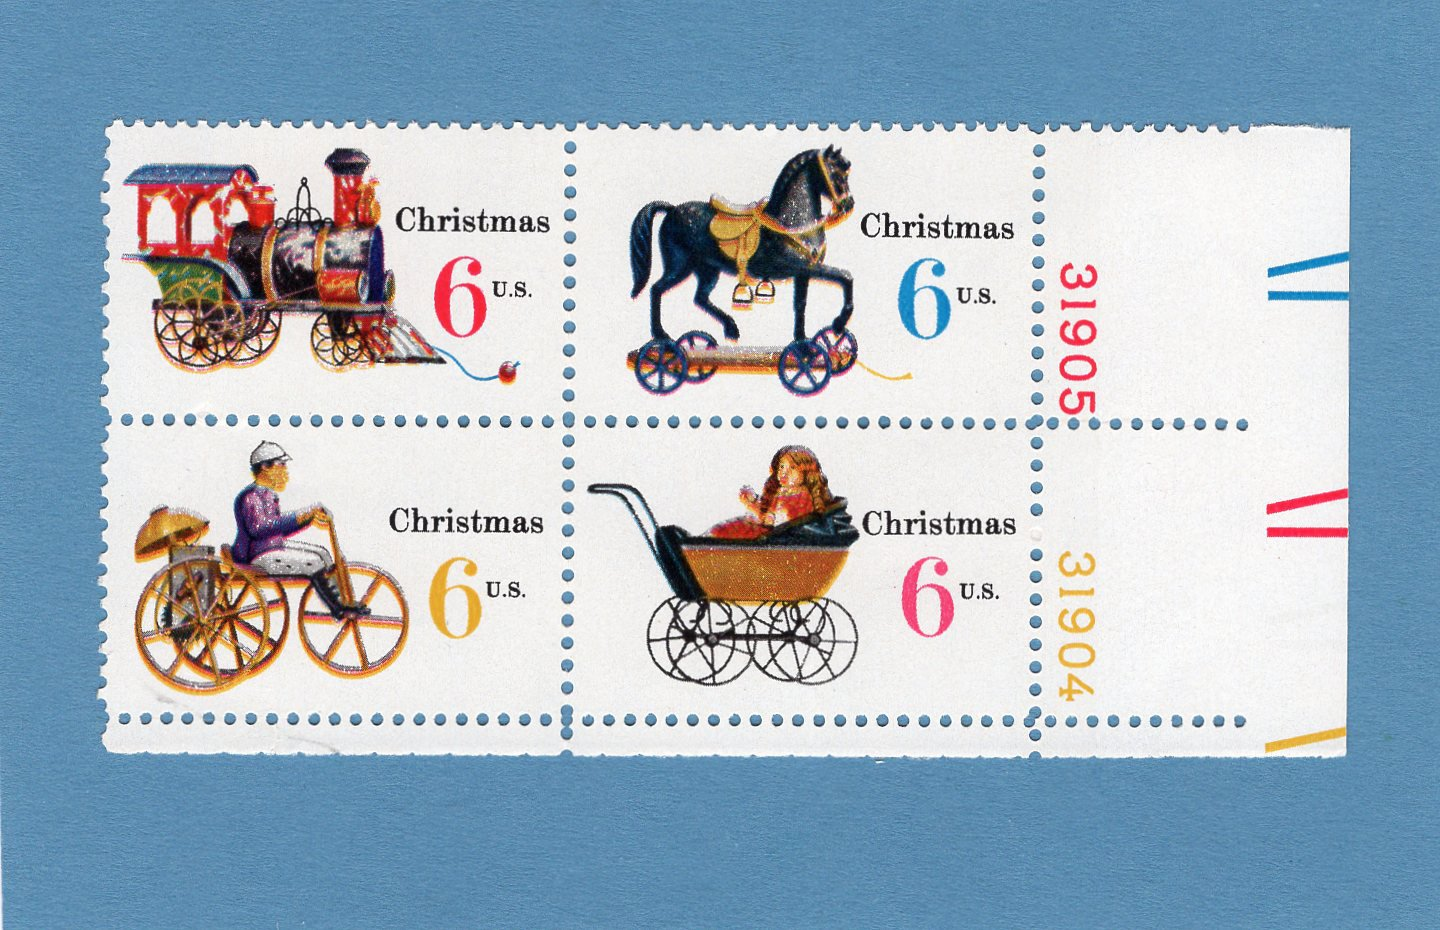 Christmas / Holiday U.S. Postage Stamps, Plate Block of Four, Vintage Toys